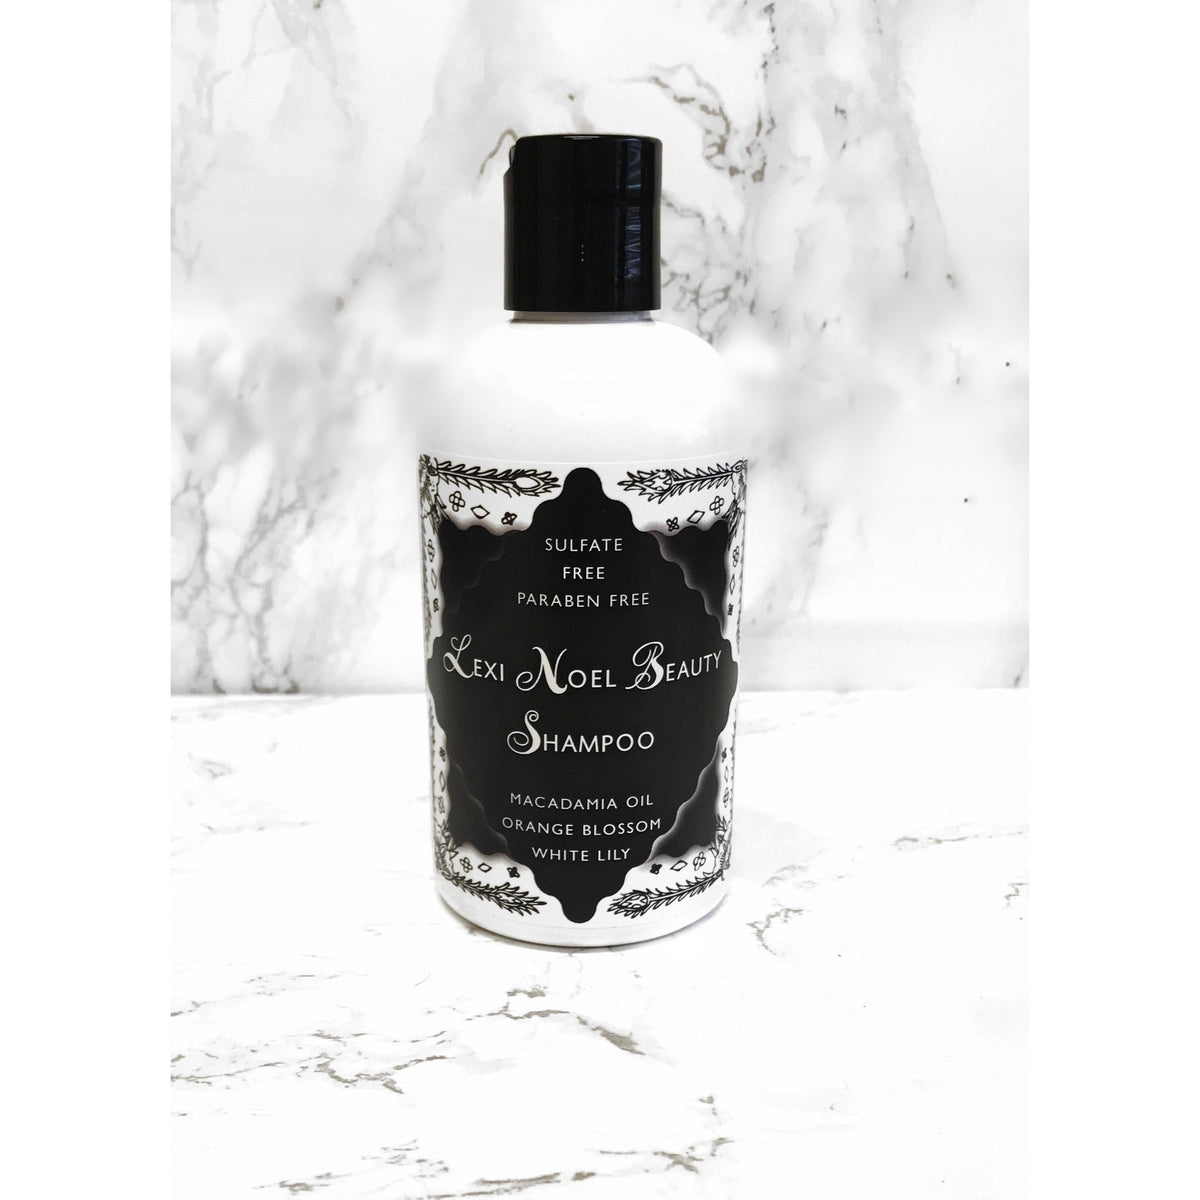 Lexi Noel Beauty Conditioning Hair Shampoo - lexinoelbeauty.com